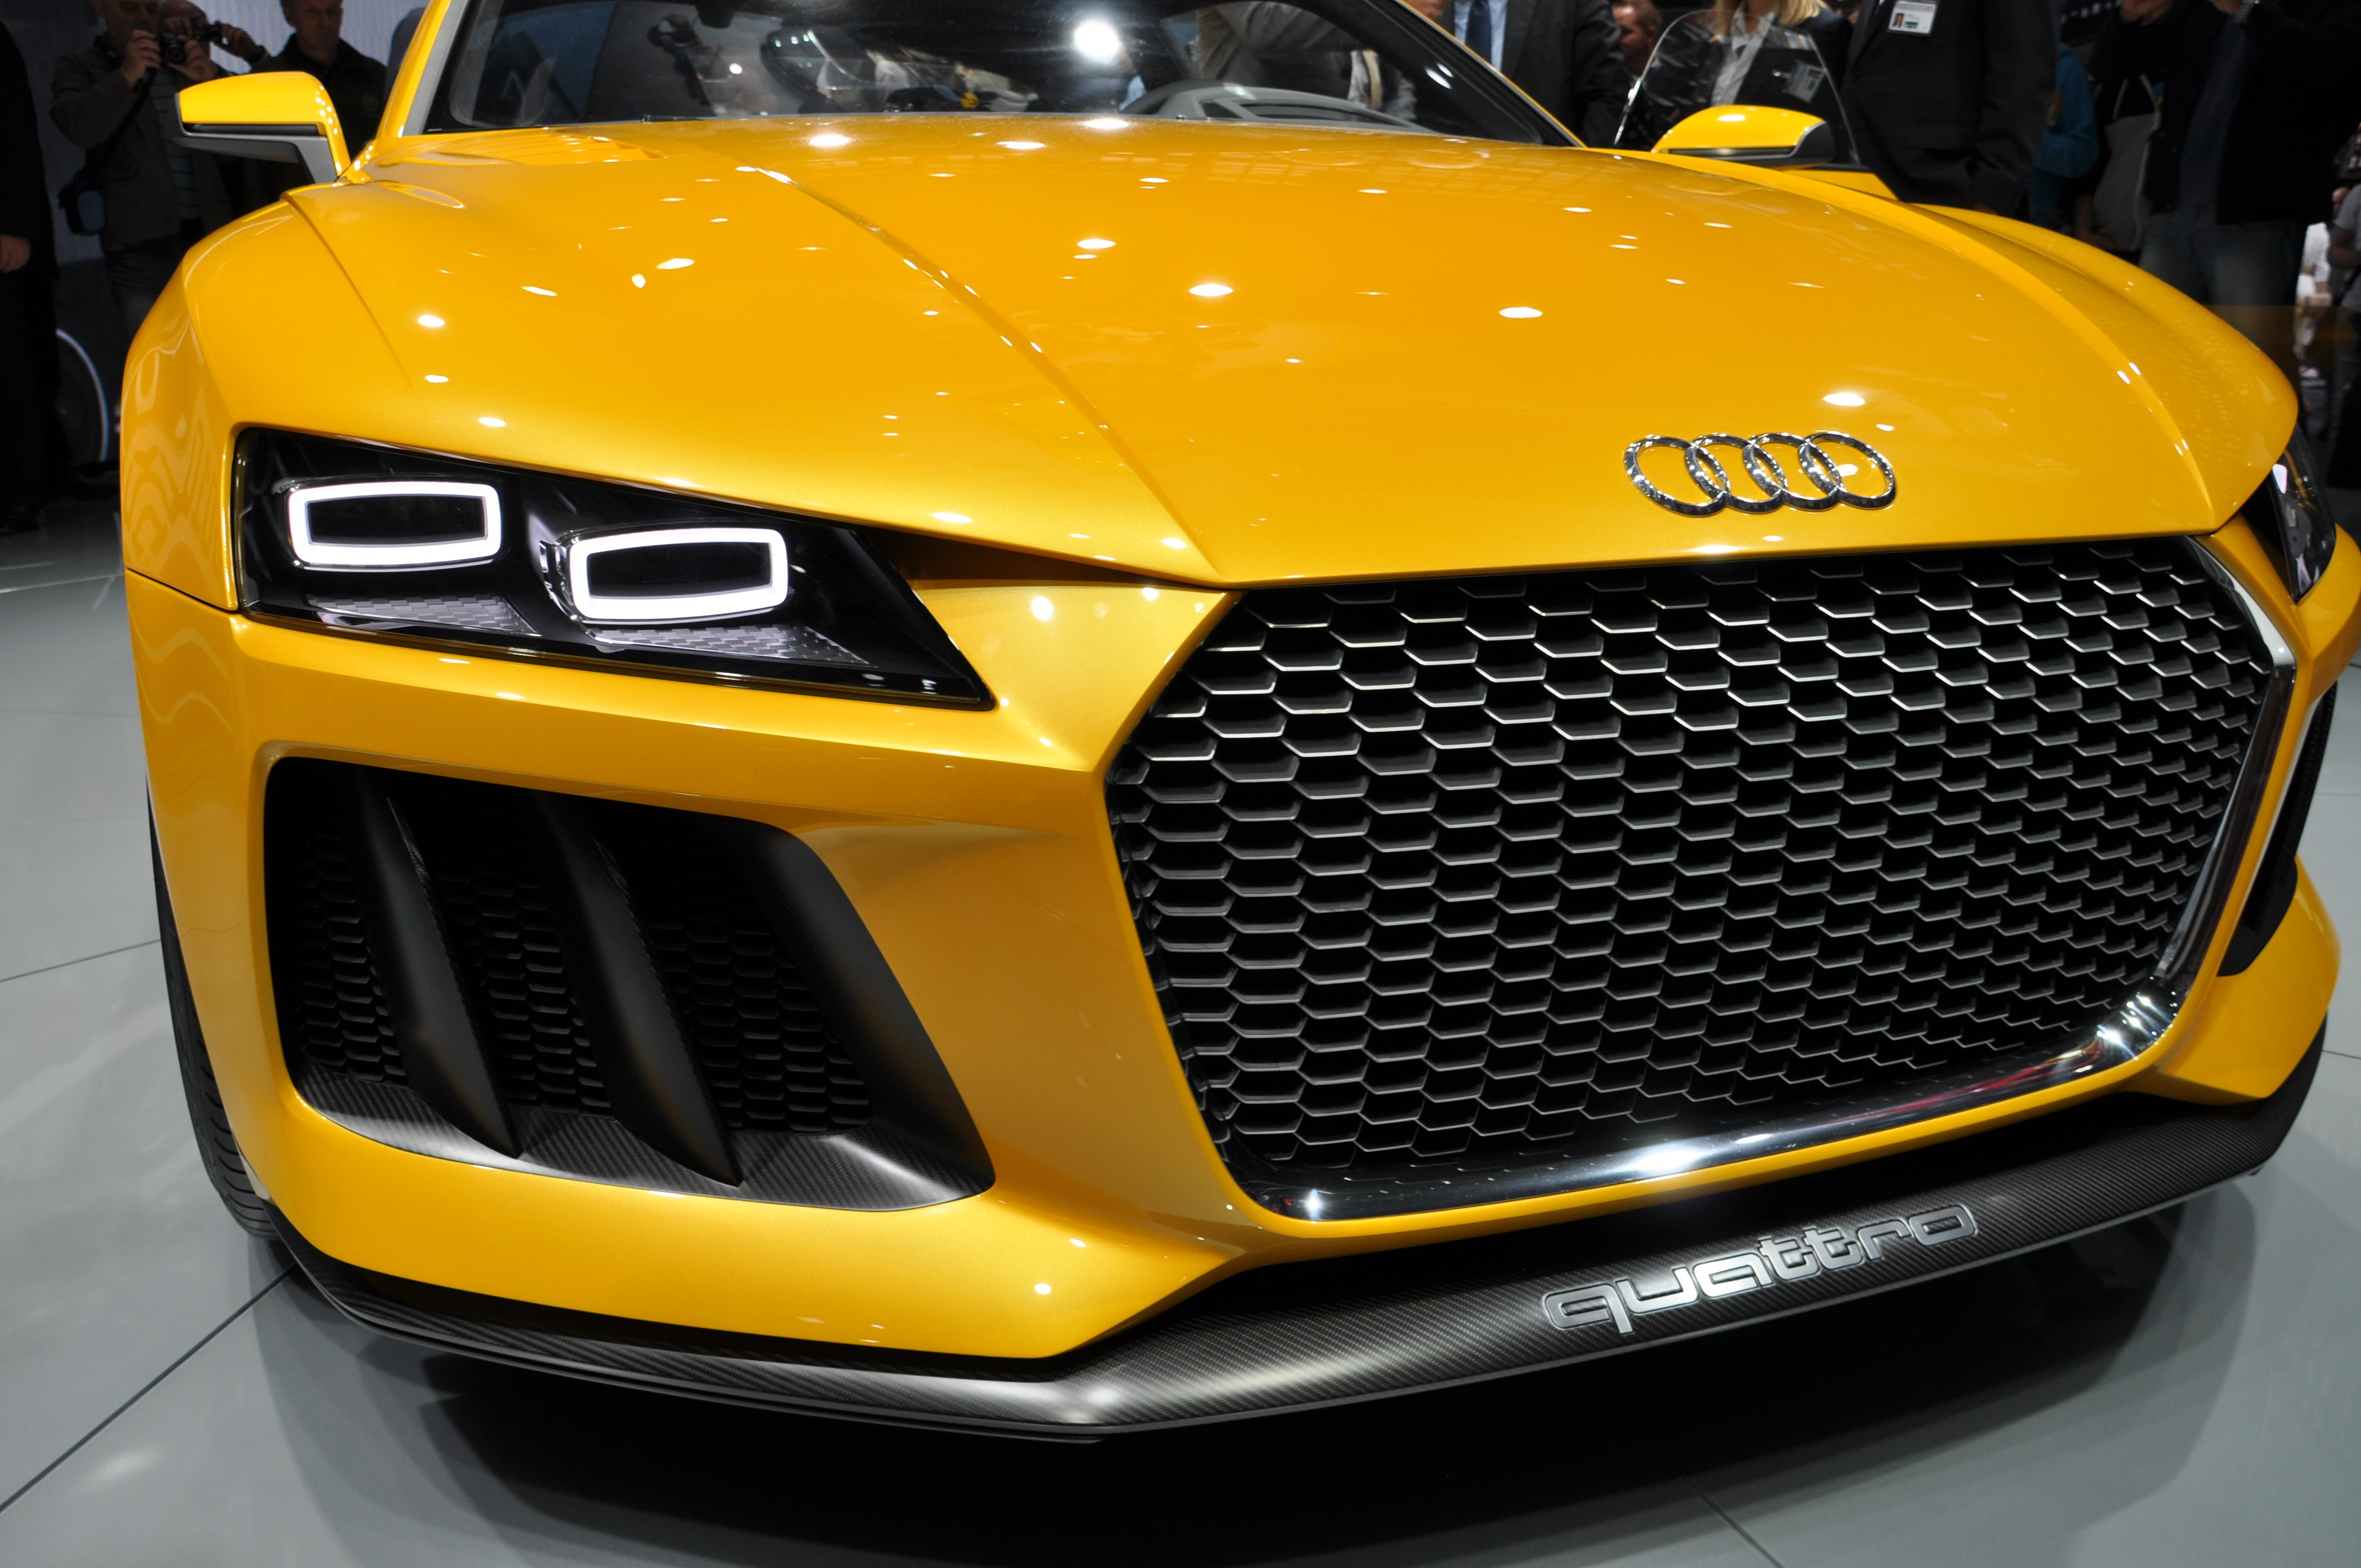 2017 Audi Matrix Led Hd Cars 4k Wallpapers Images Backgrounds Photos And Pictures